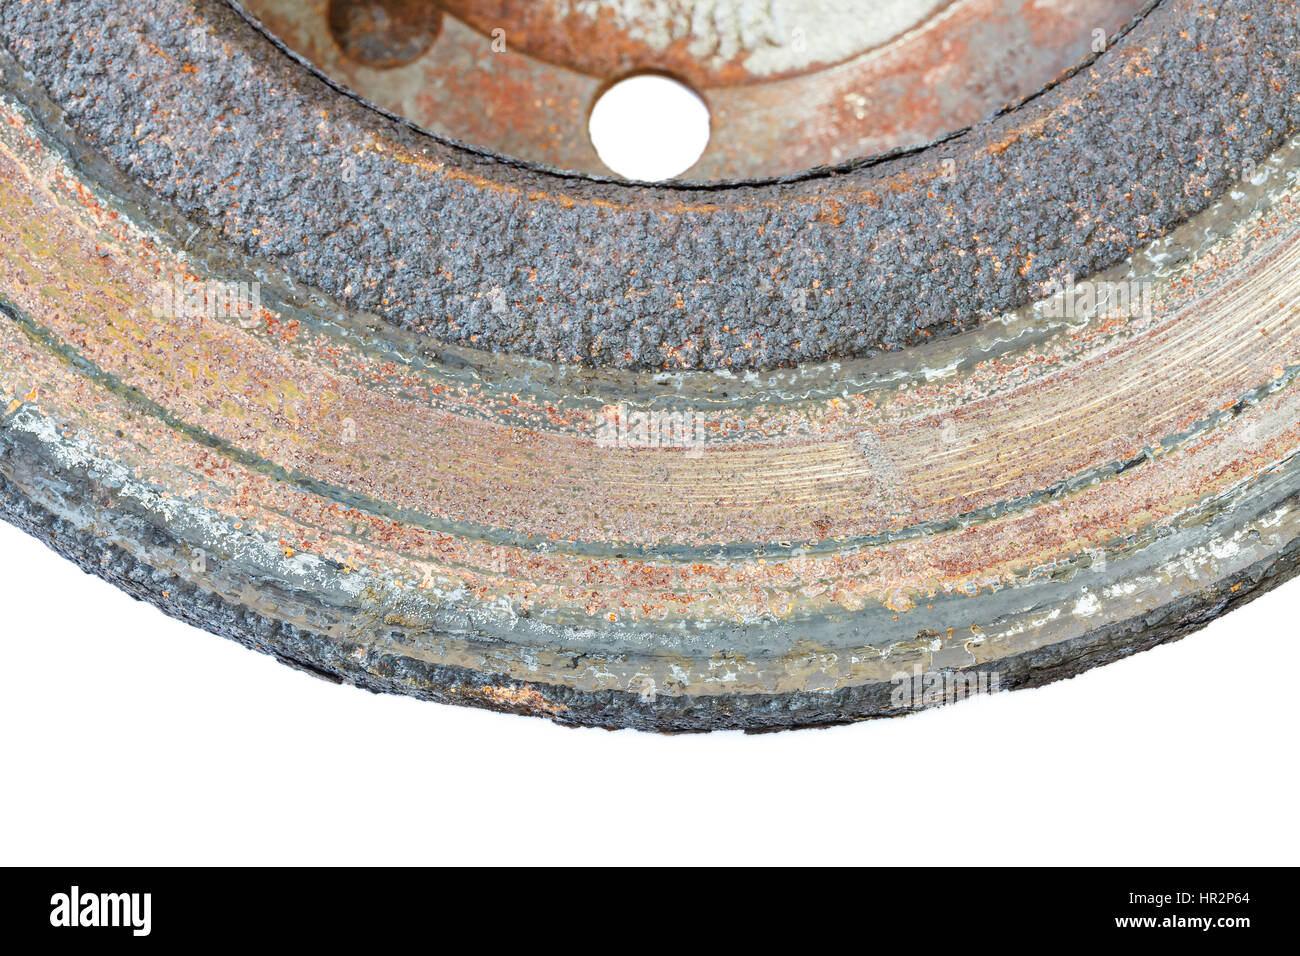 excessively worn rusty brake discs: too thin, covered with rust, with border and with scorched area - Stock Image